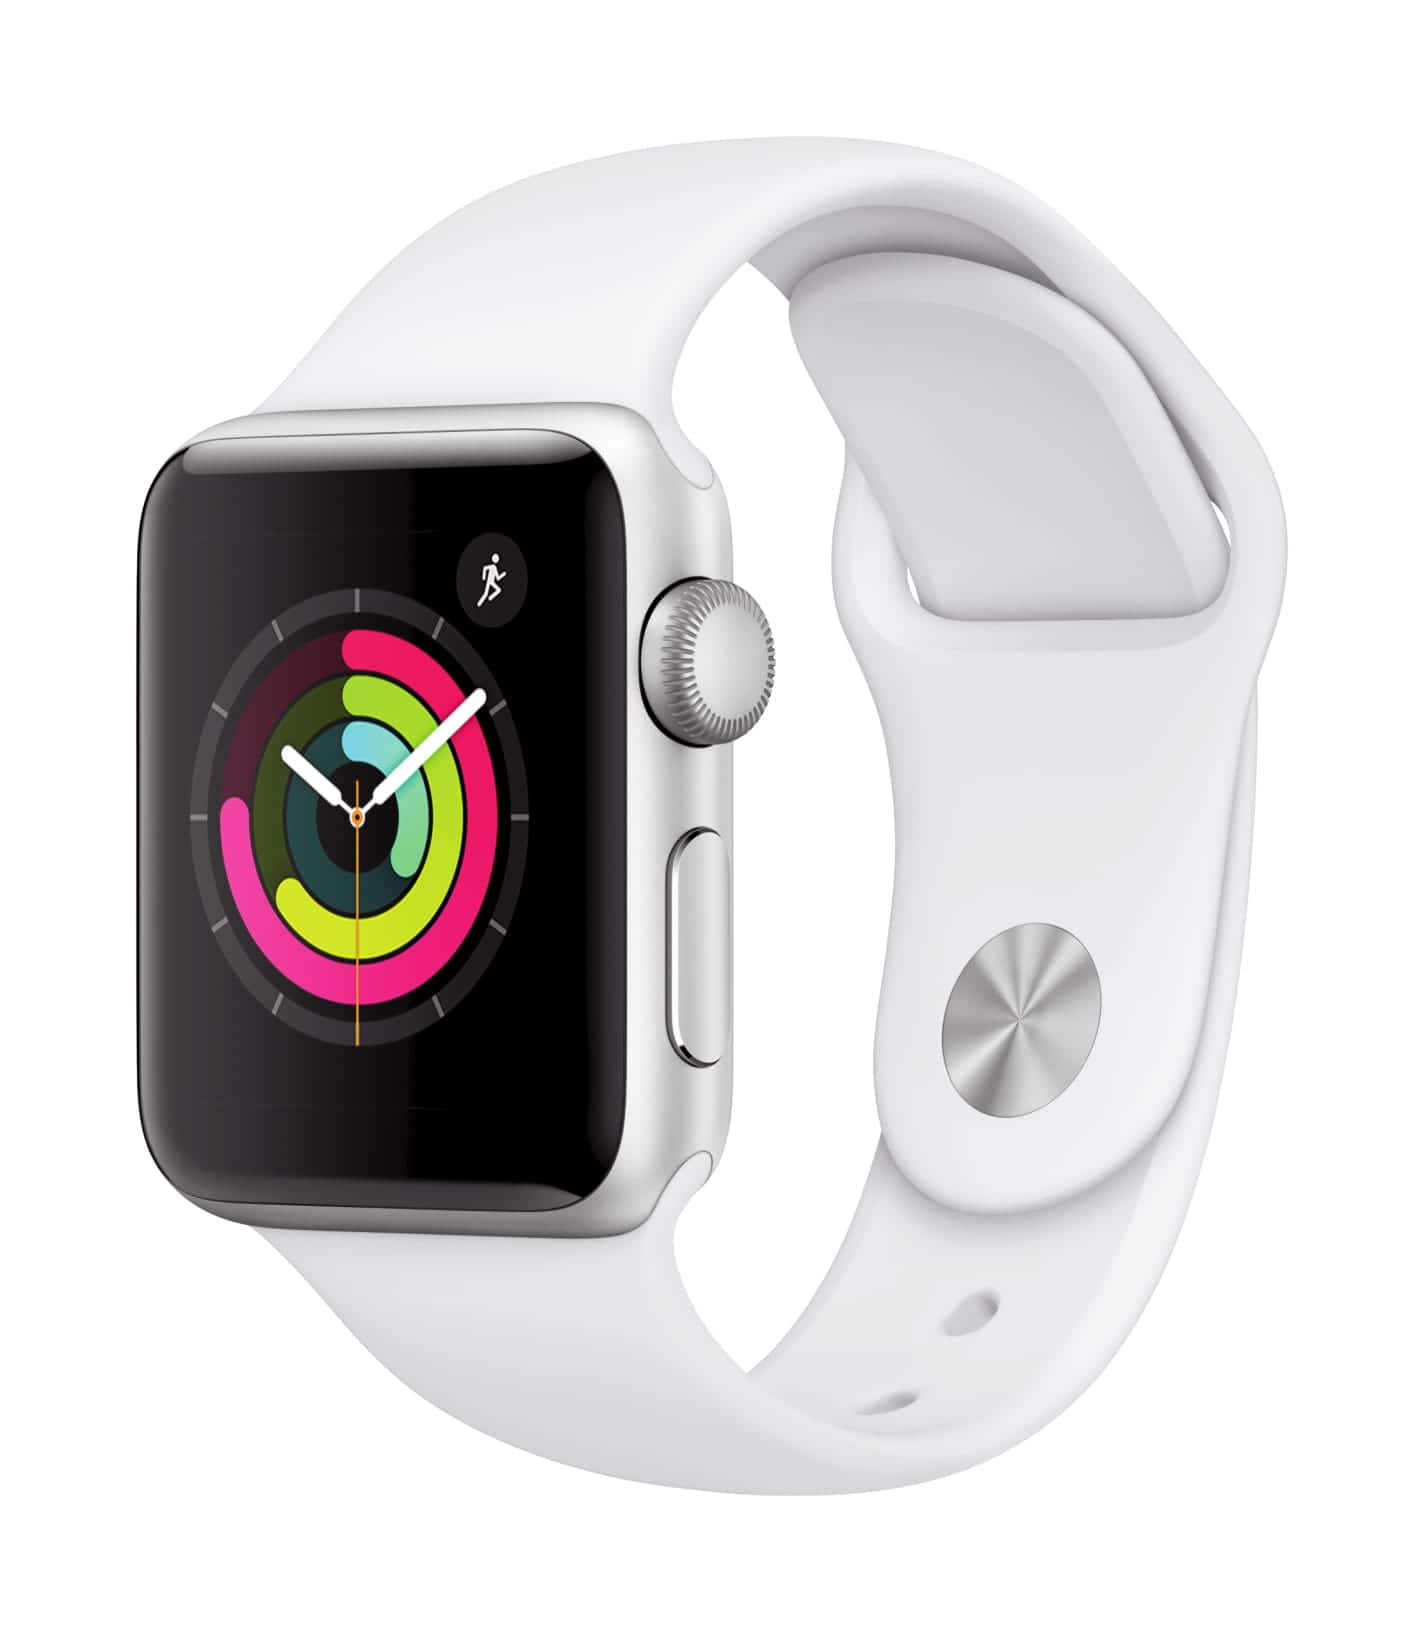 Apple Watch Series 3 (GPS, 38mm) - Space Gray Aluminium Case with Black Sport Band $199